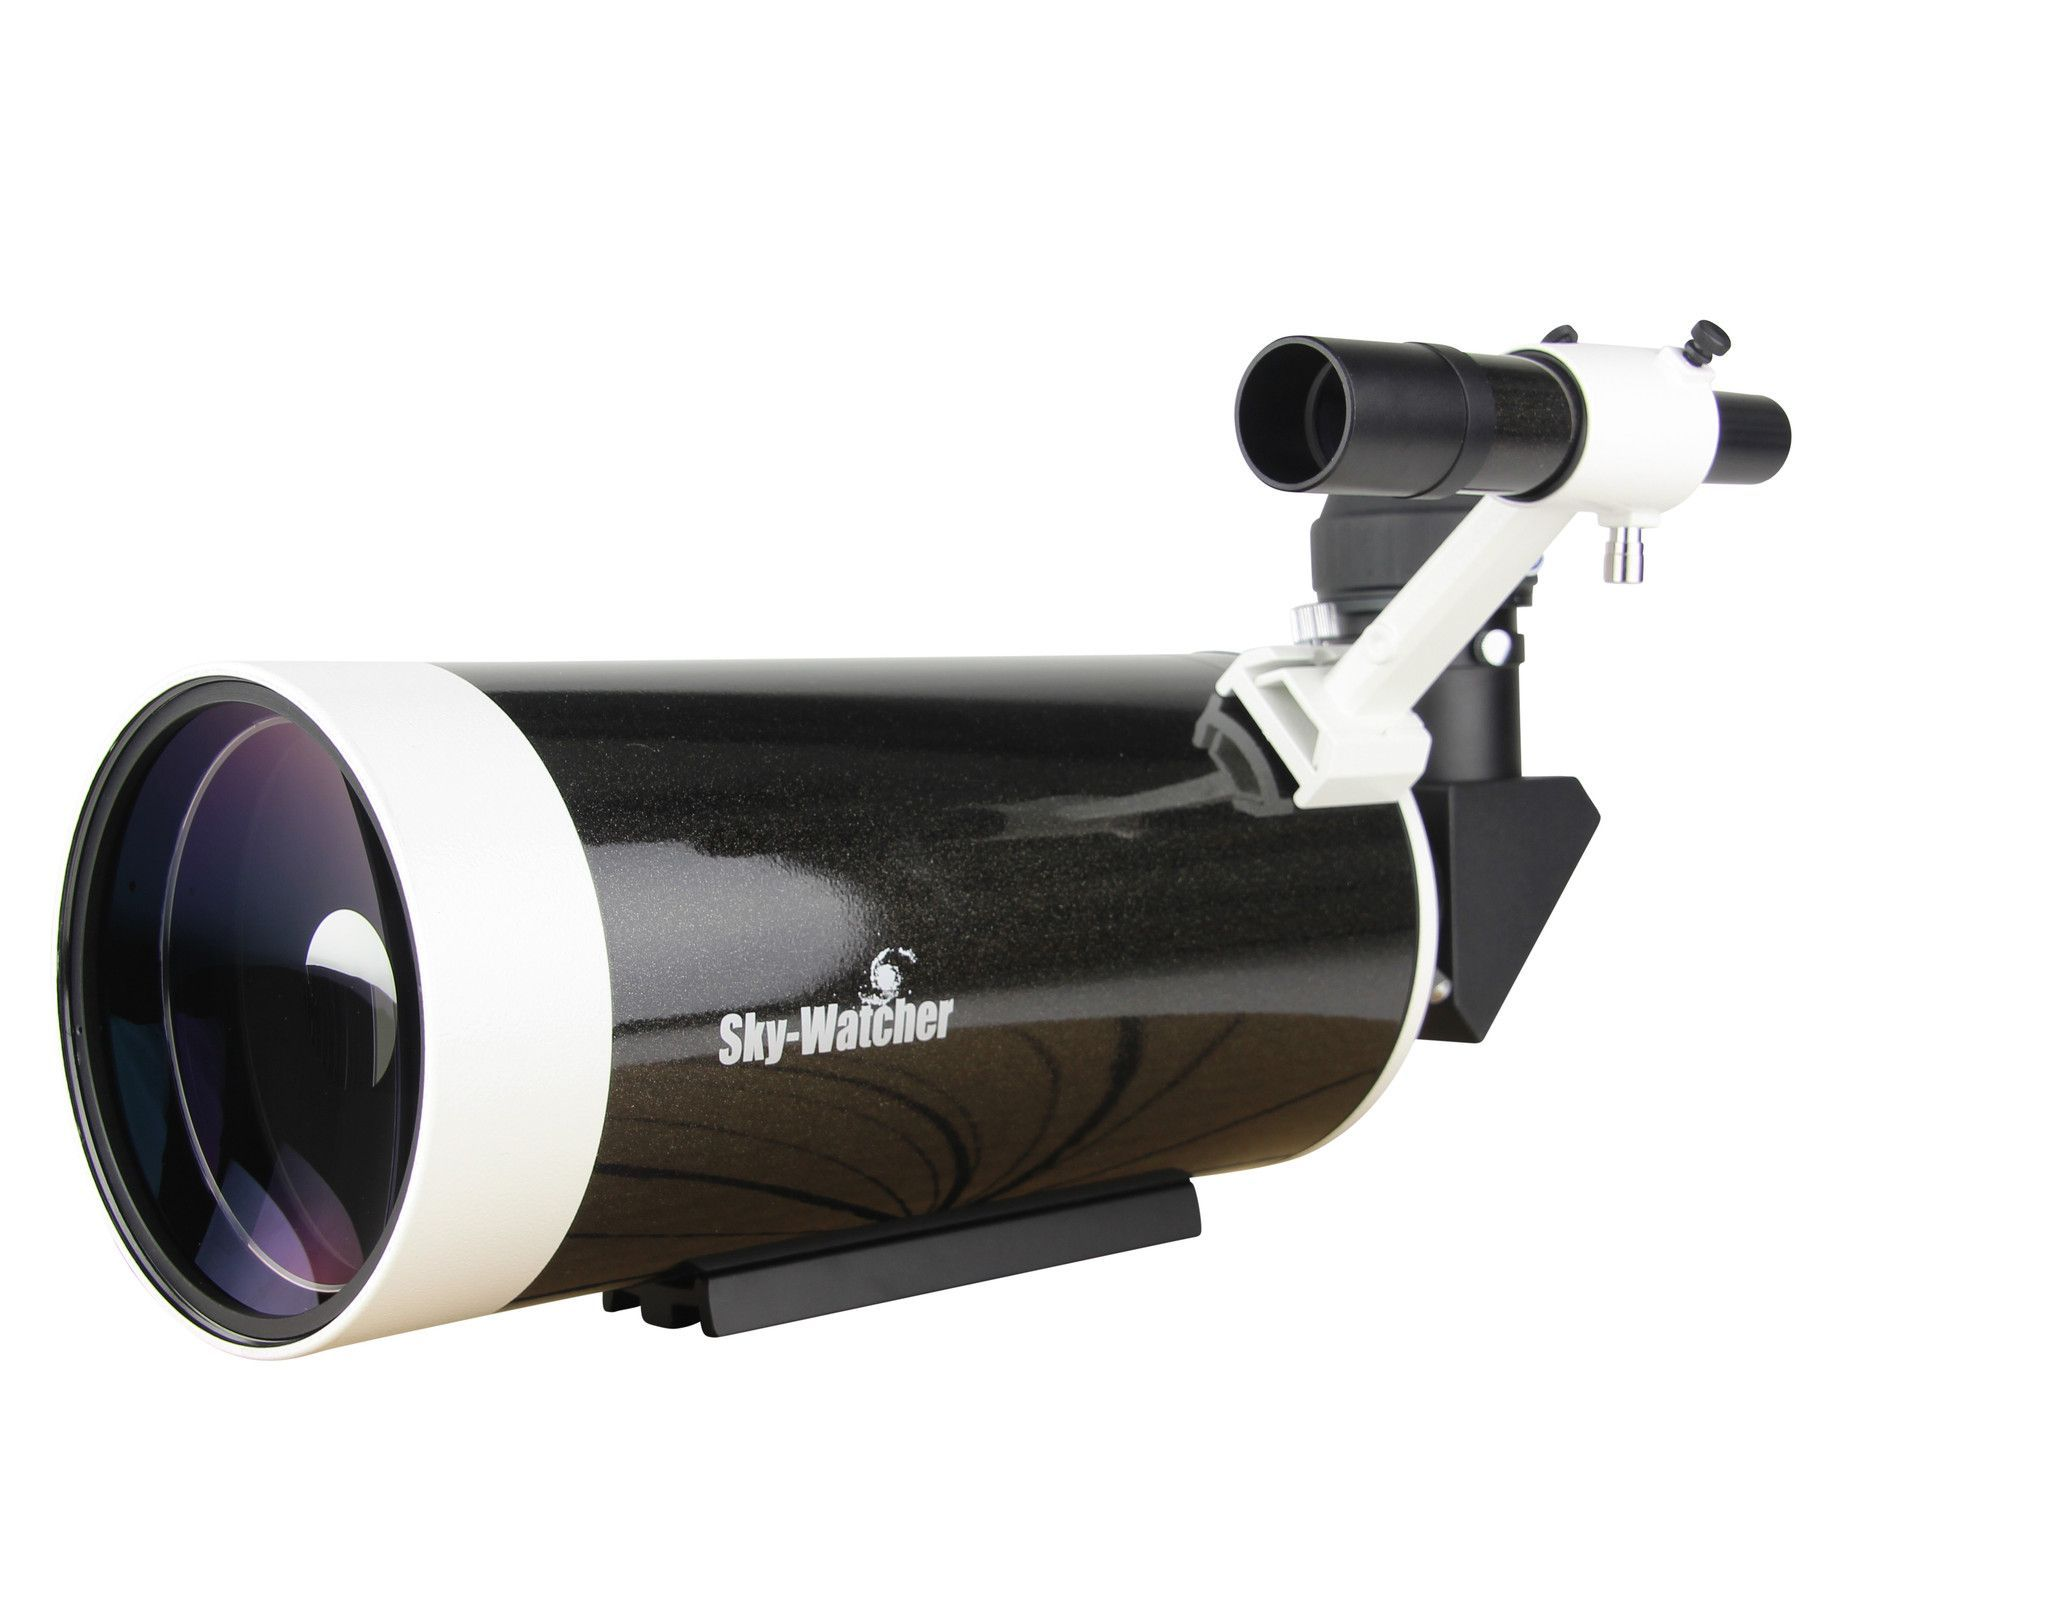 Sky watcher usa in telescopes telescope